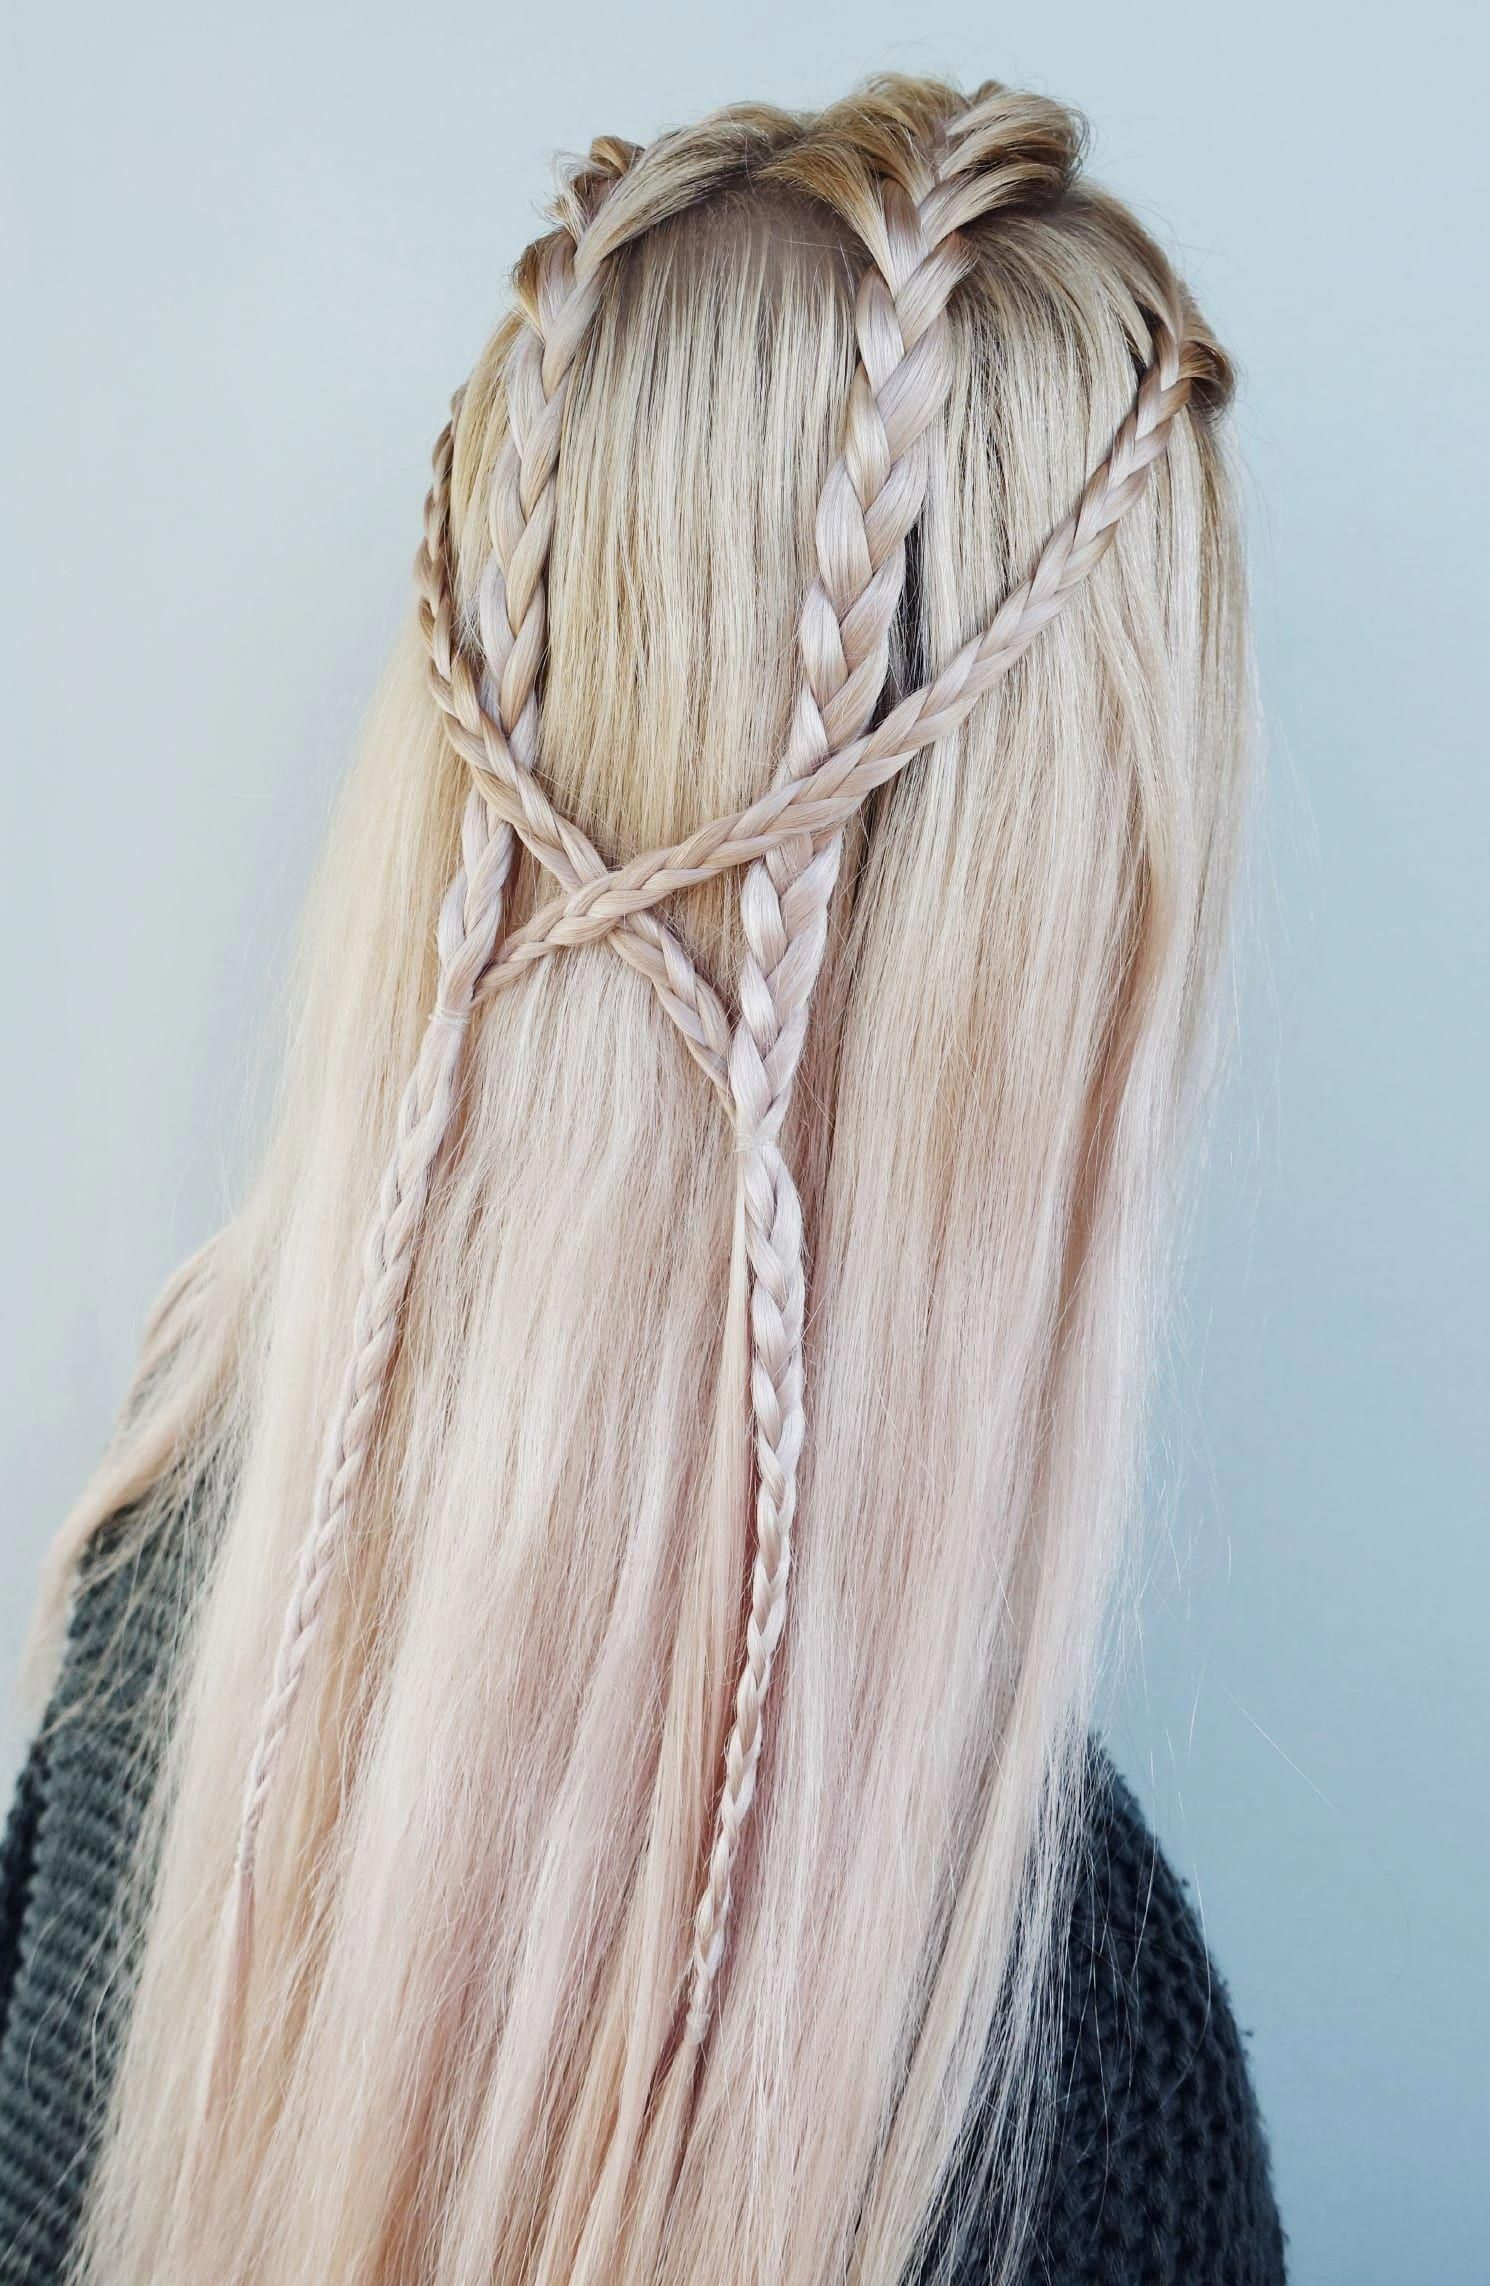 Multiple Braid Design Continue To Get Creative With Your Braids You Don T Have To Do Dozens Of Intricate Designs Braided Hairstyles Hair Styles Braid Styles